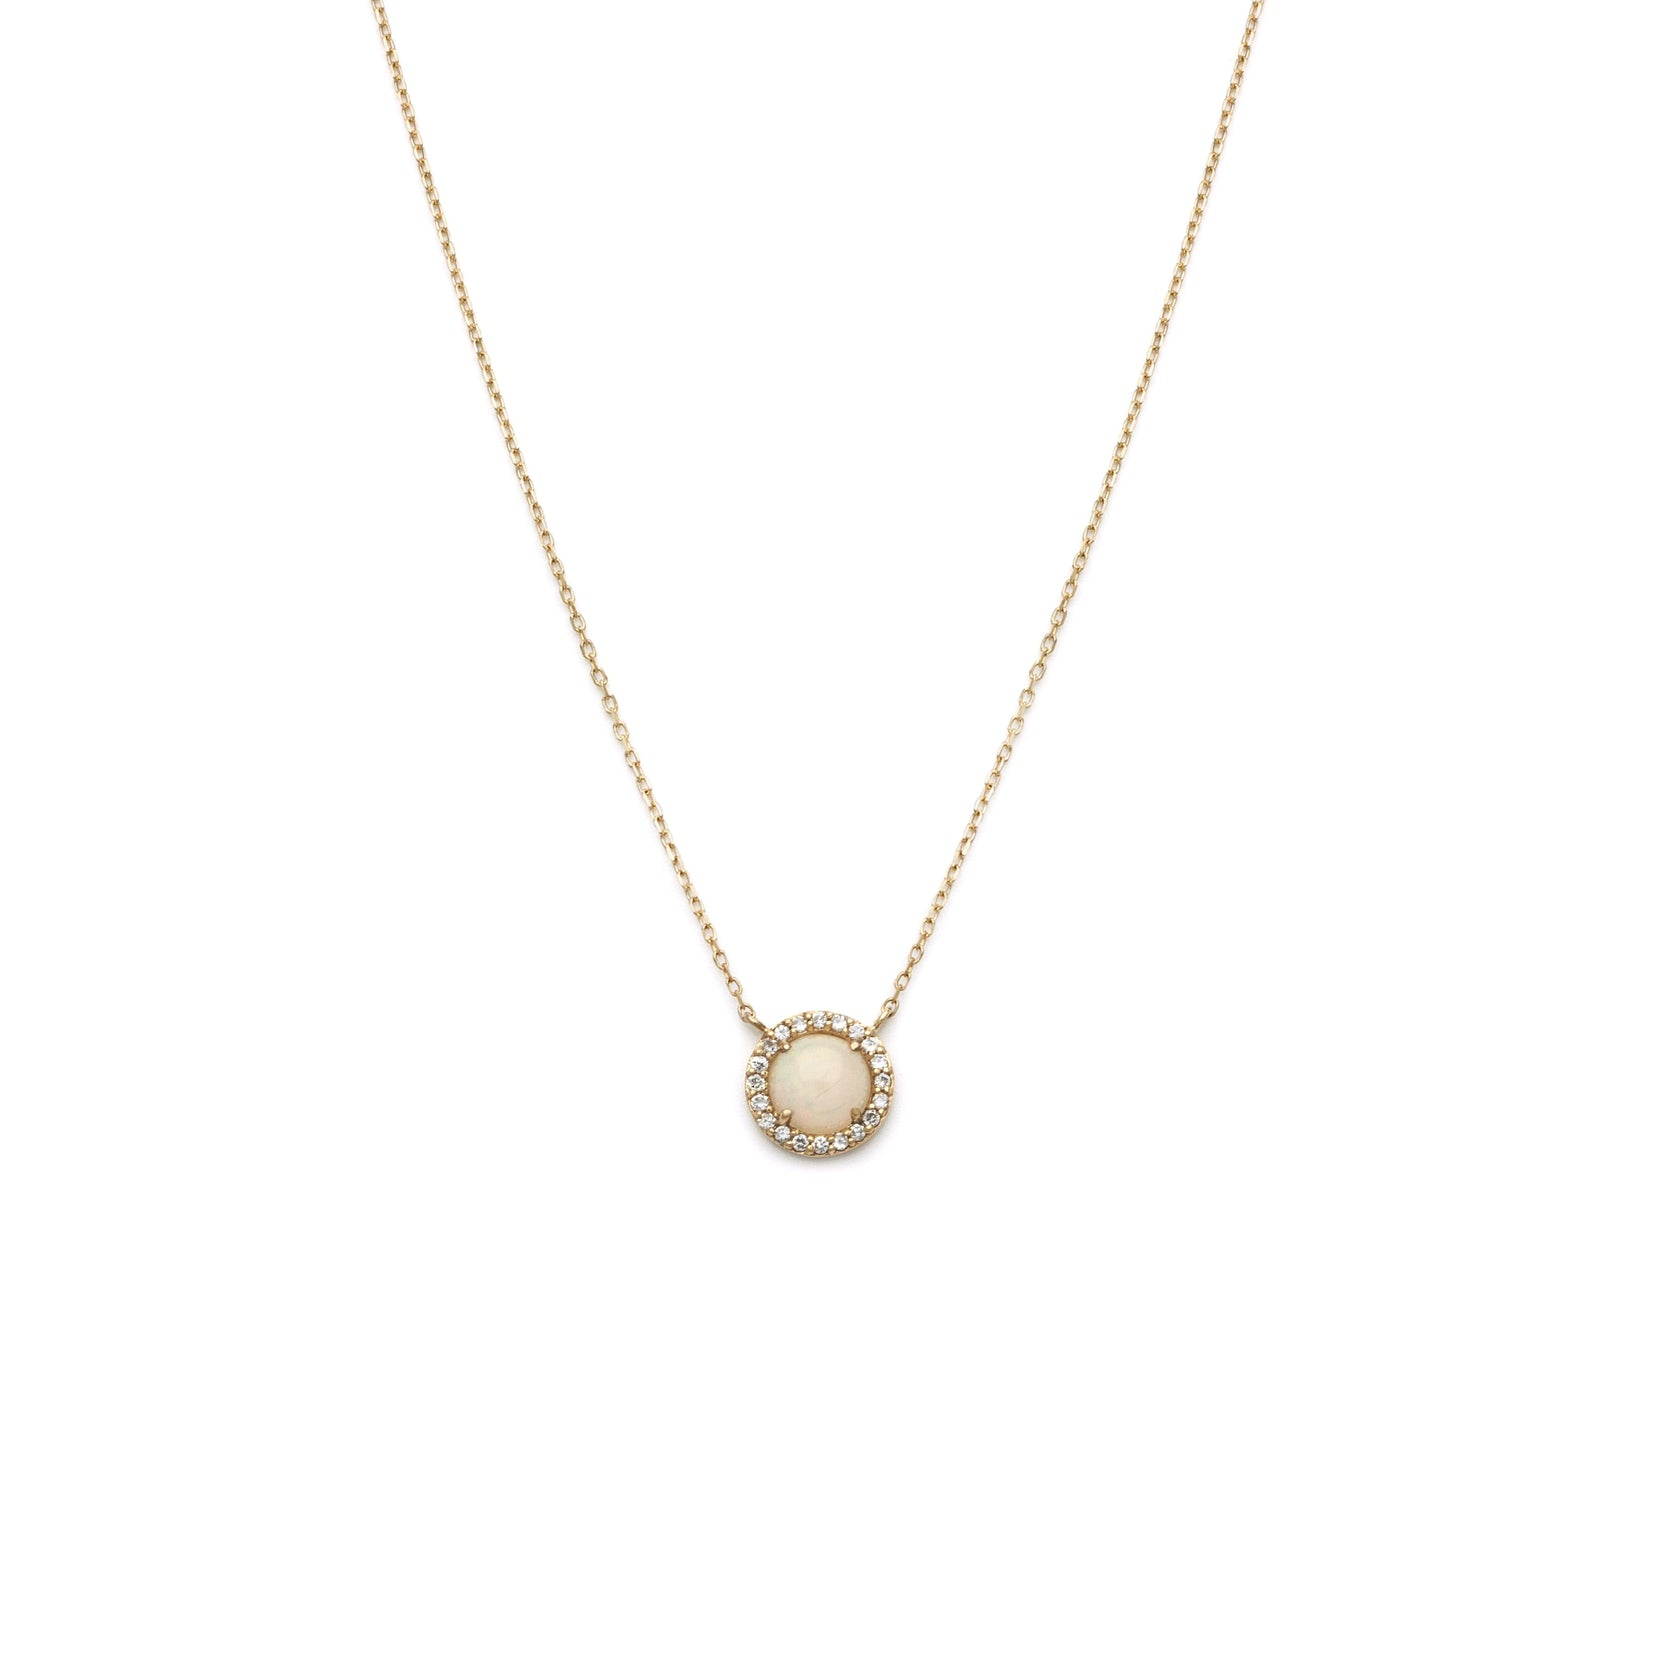 Halo Stone Necklace - 14k Solid Gold